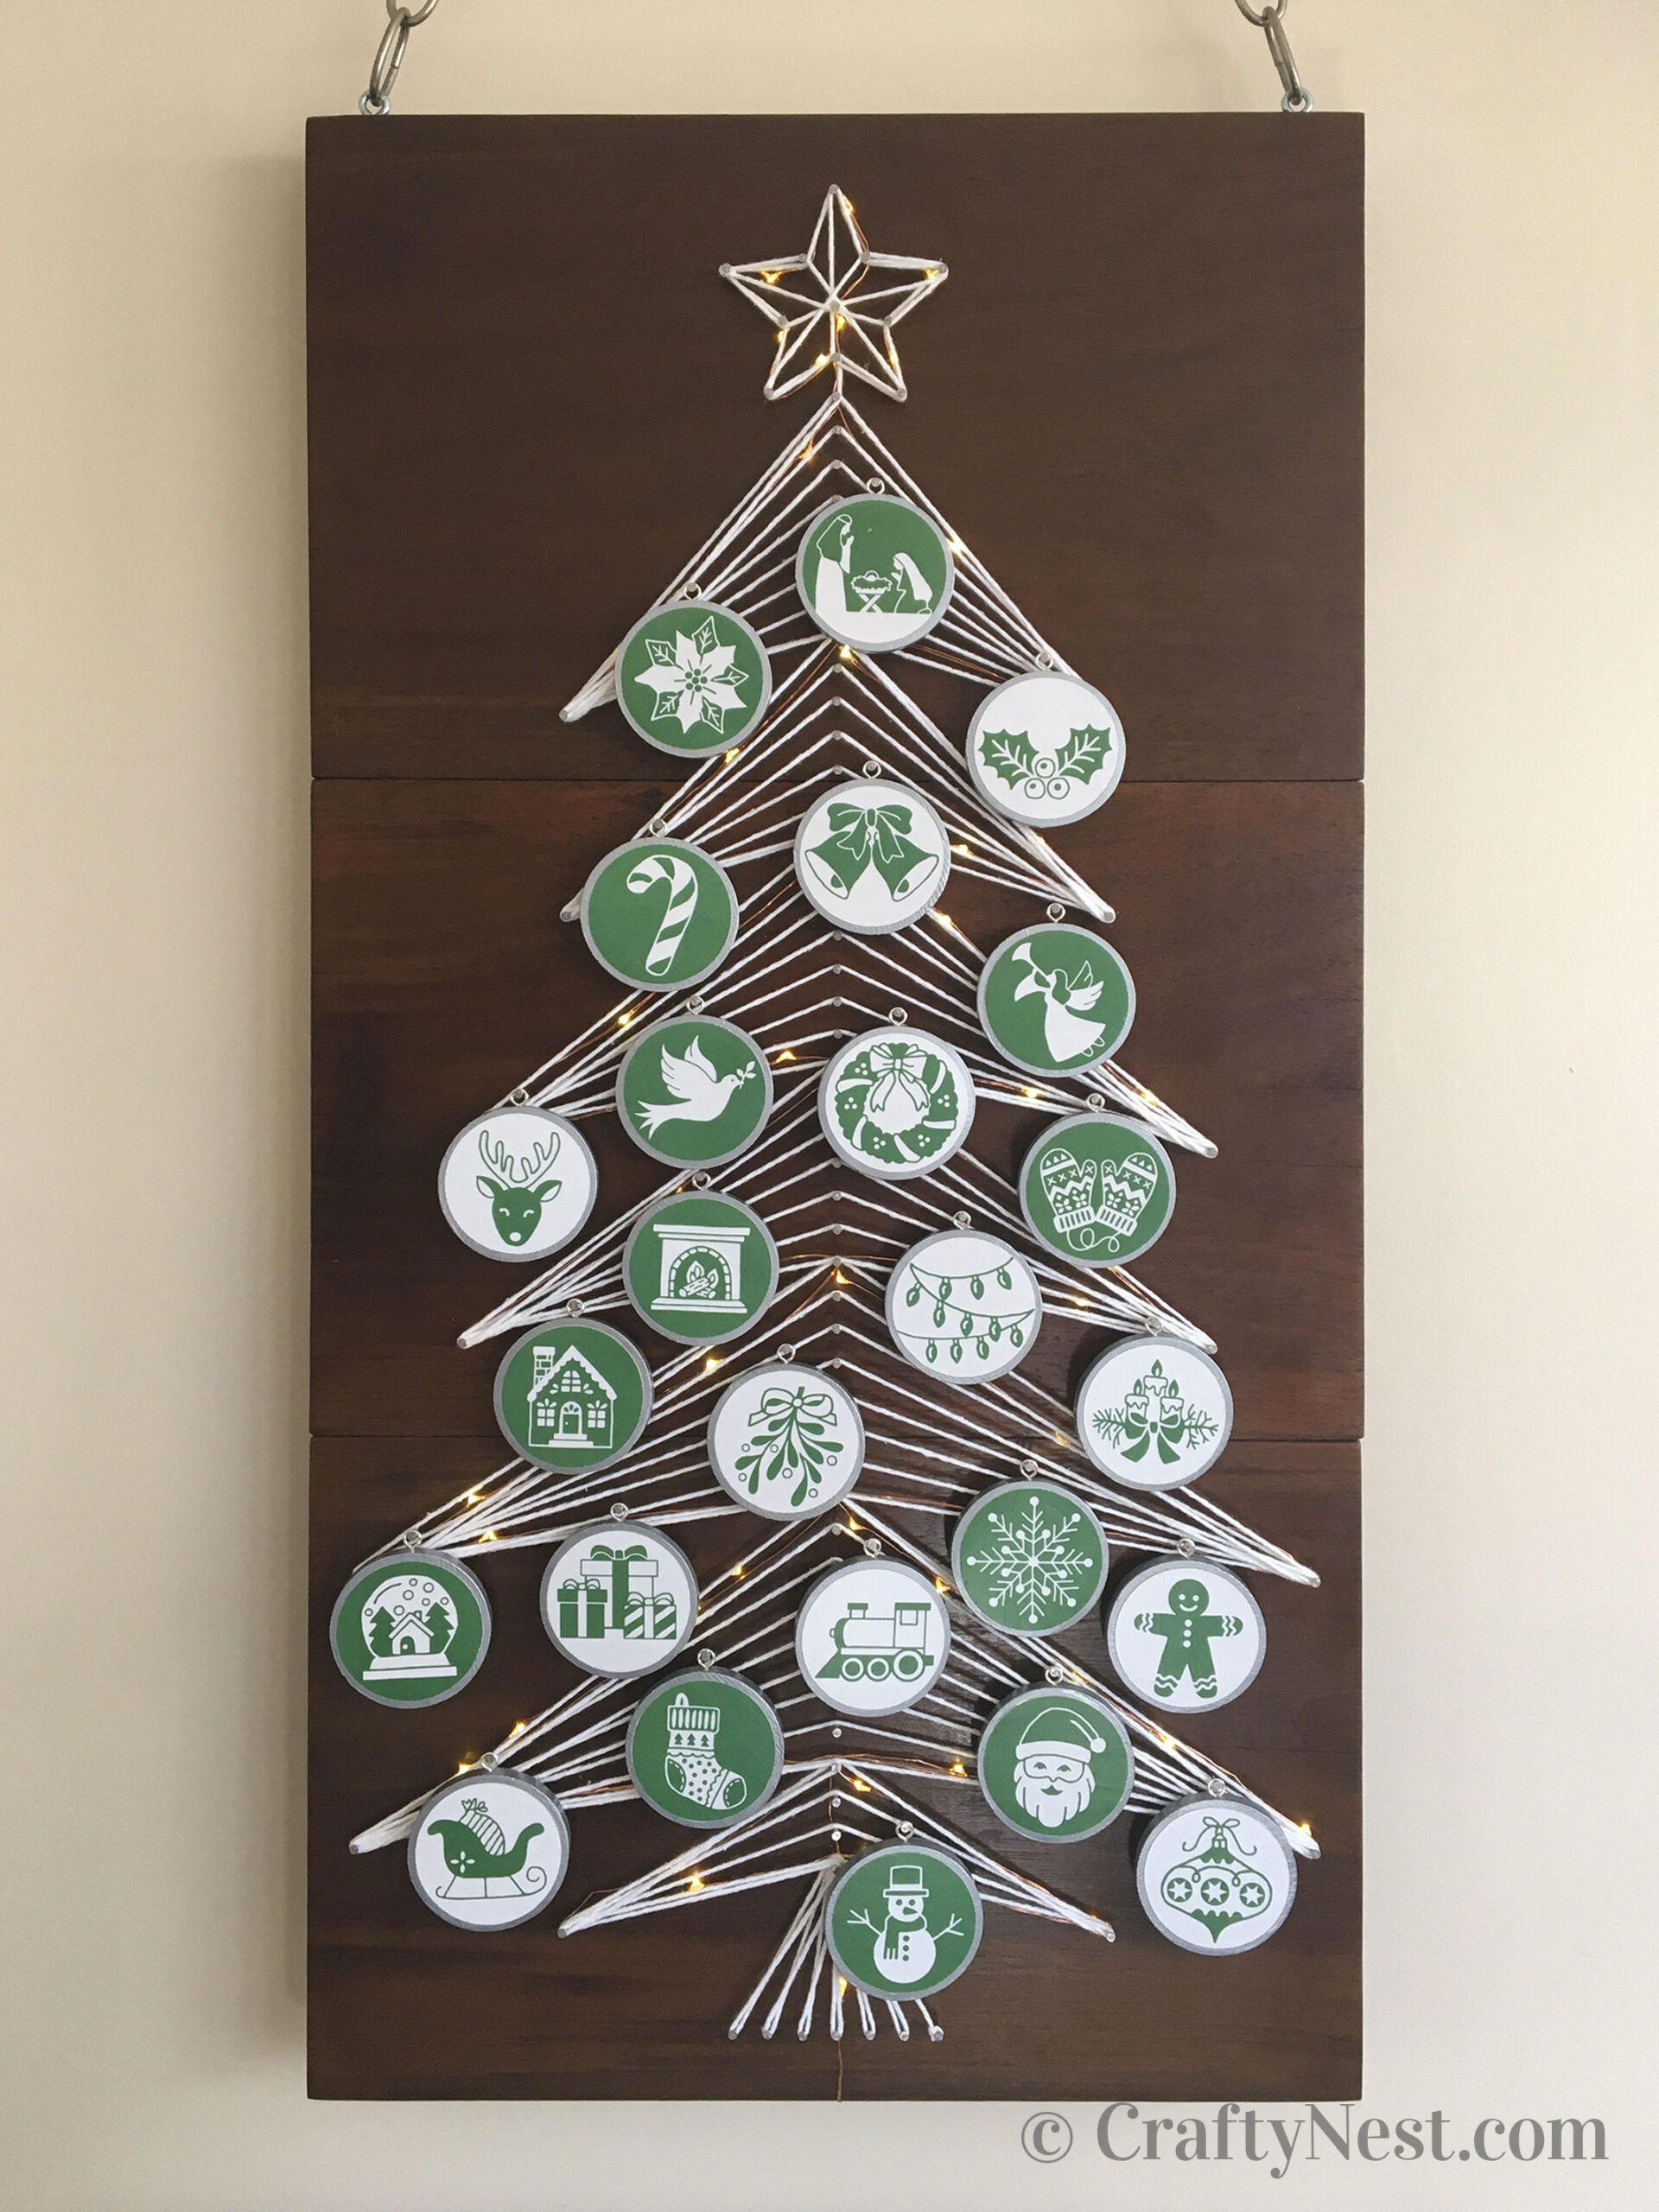 String art advent calendar Christmas tree with lights and ornaments, photo